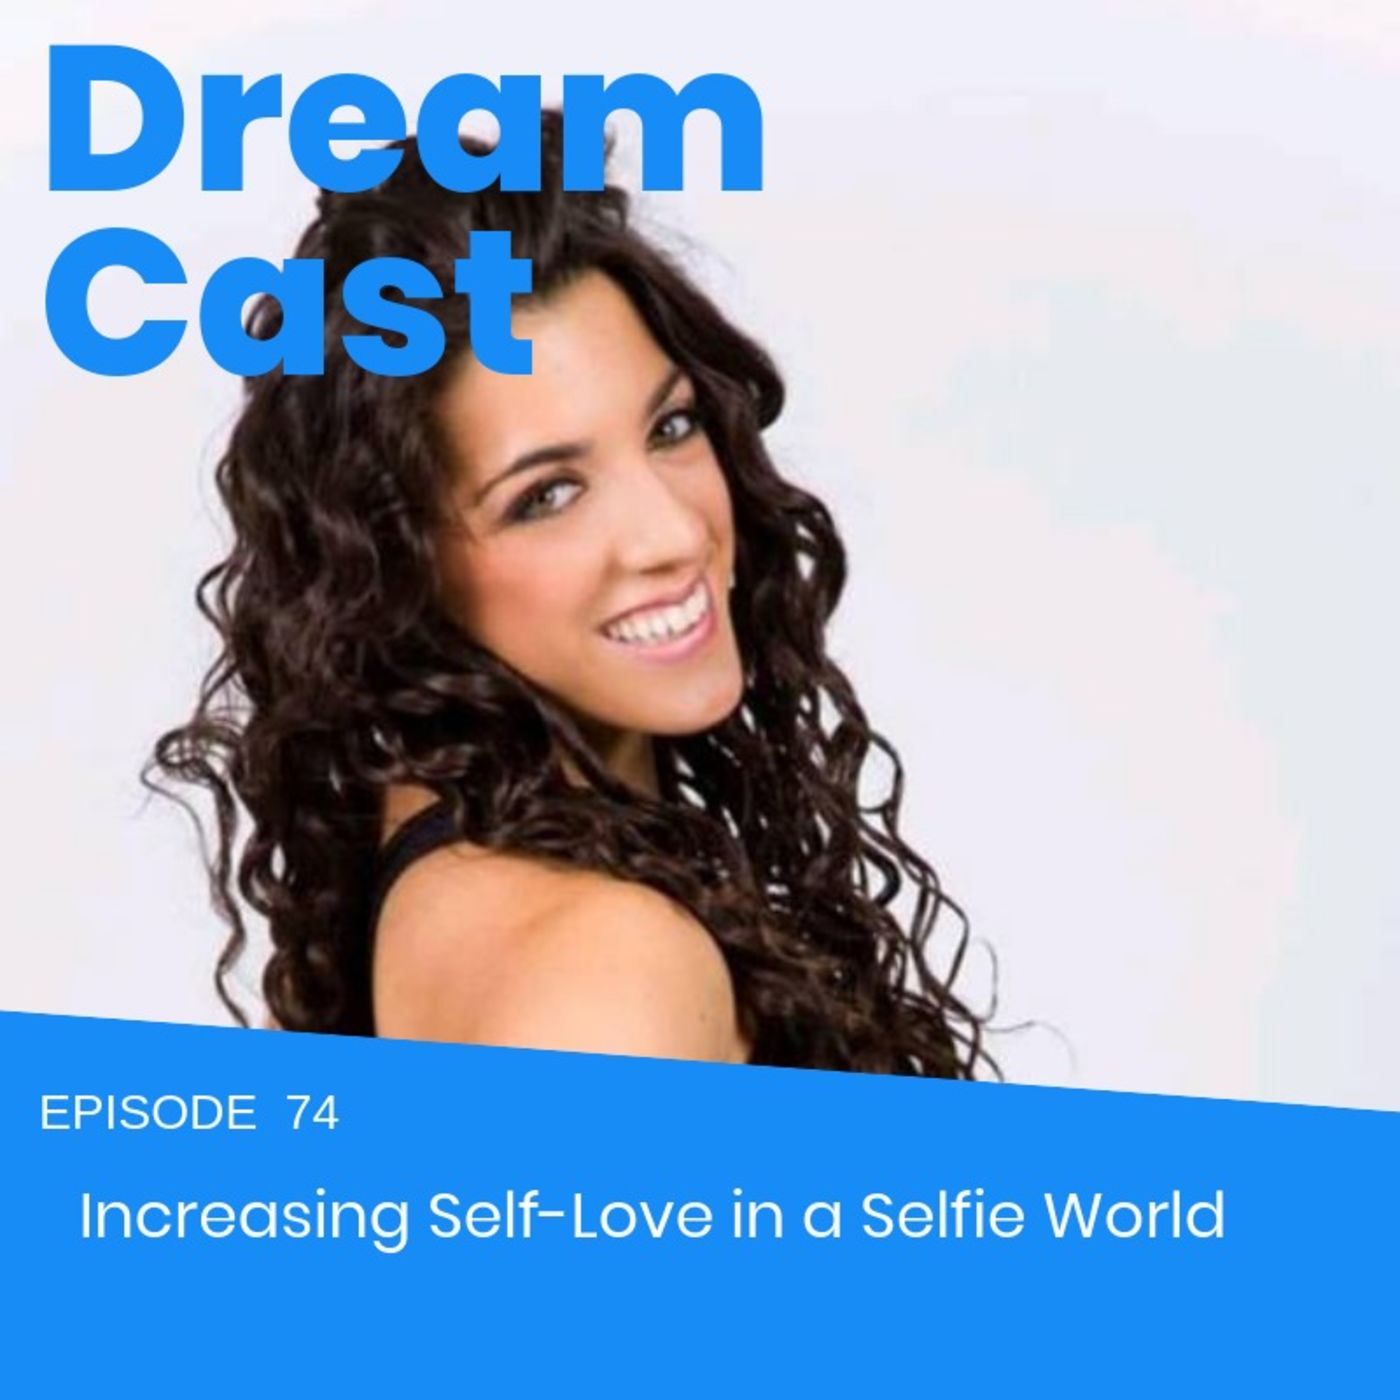 Episode 74 -  Increasing Self-Love in a Selfie World